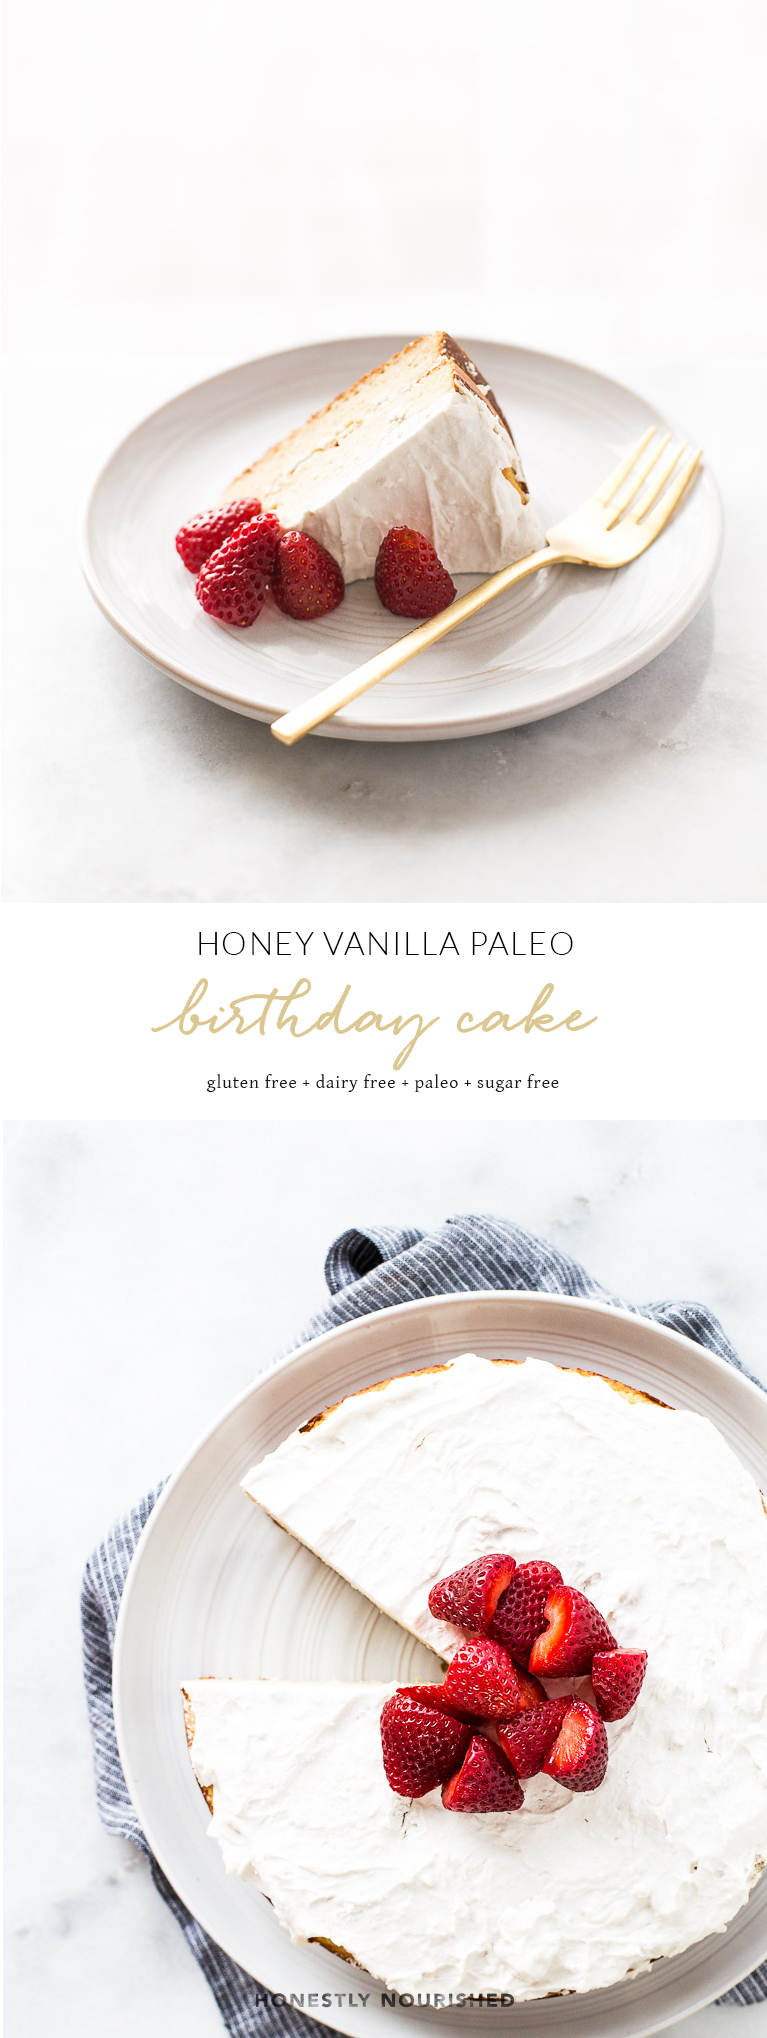 A simple, healthy PALEO honey vanilla birthday cake! made with almond and coconut flours! Clean ingredients only - no sugar, dairy, gluten, or grains.